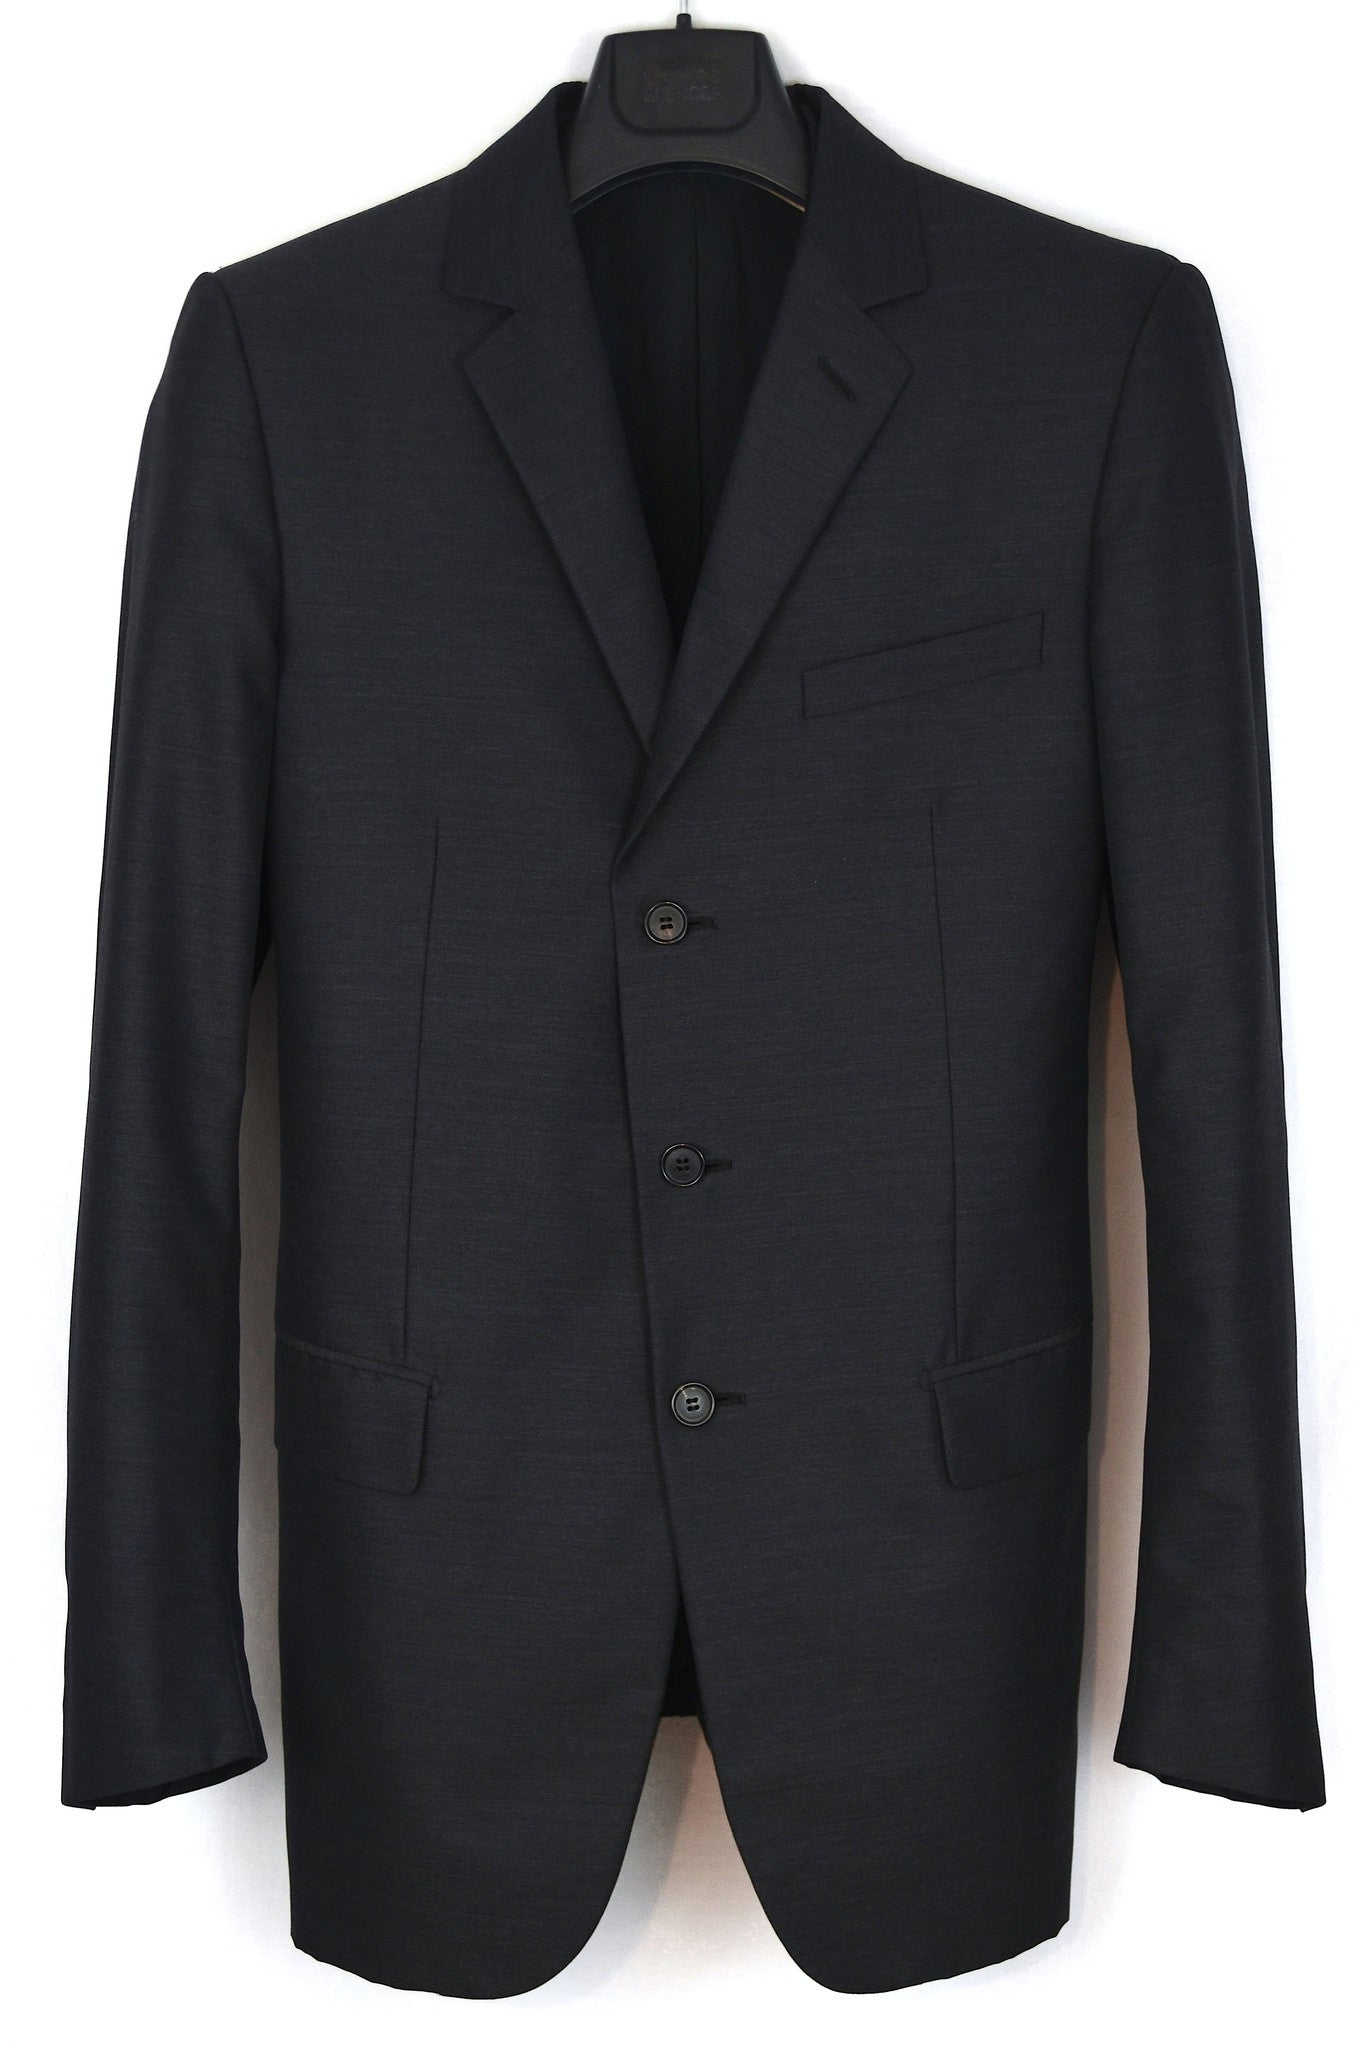 2002 Coated Silk/Wool Hand-Tailored Blazer Jacket